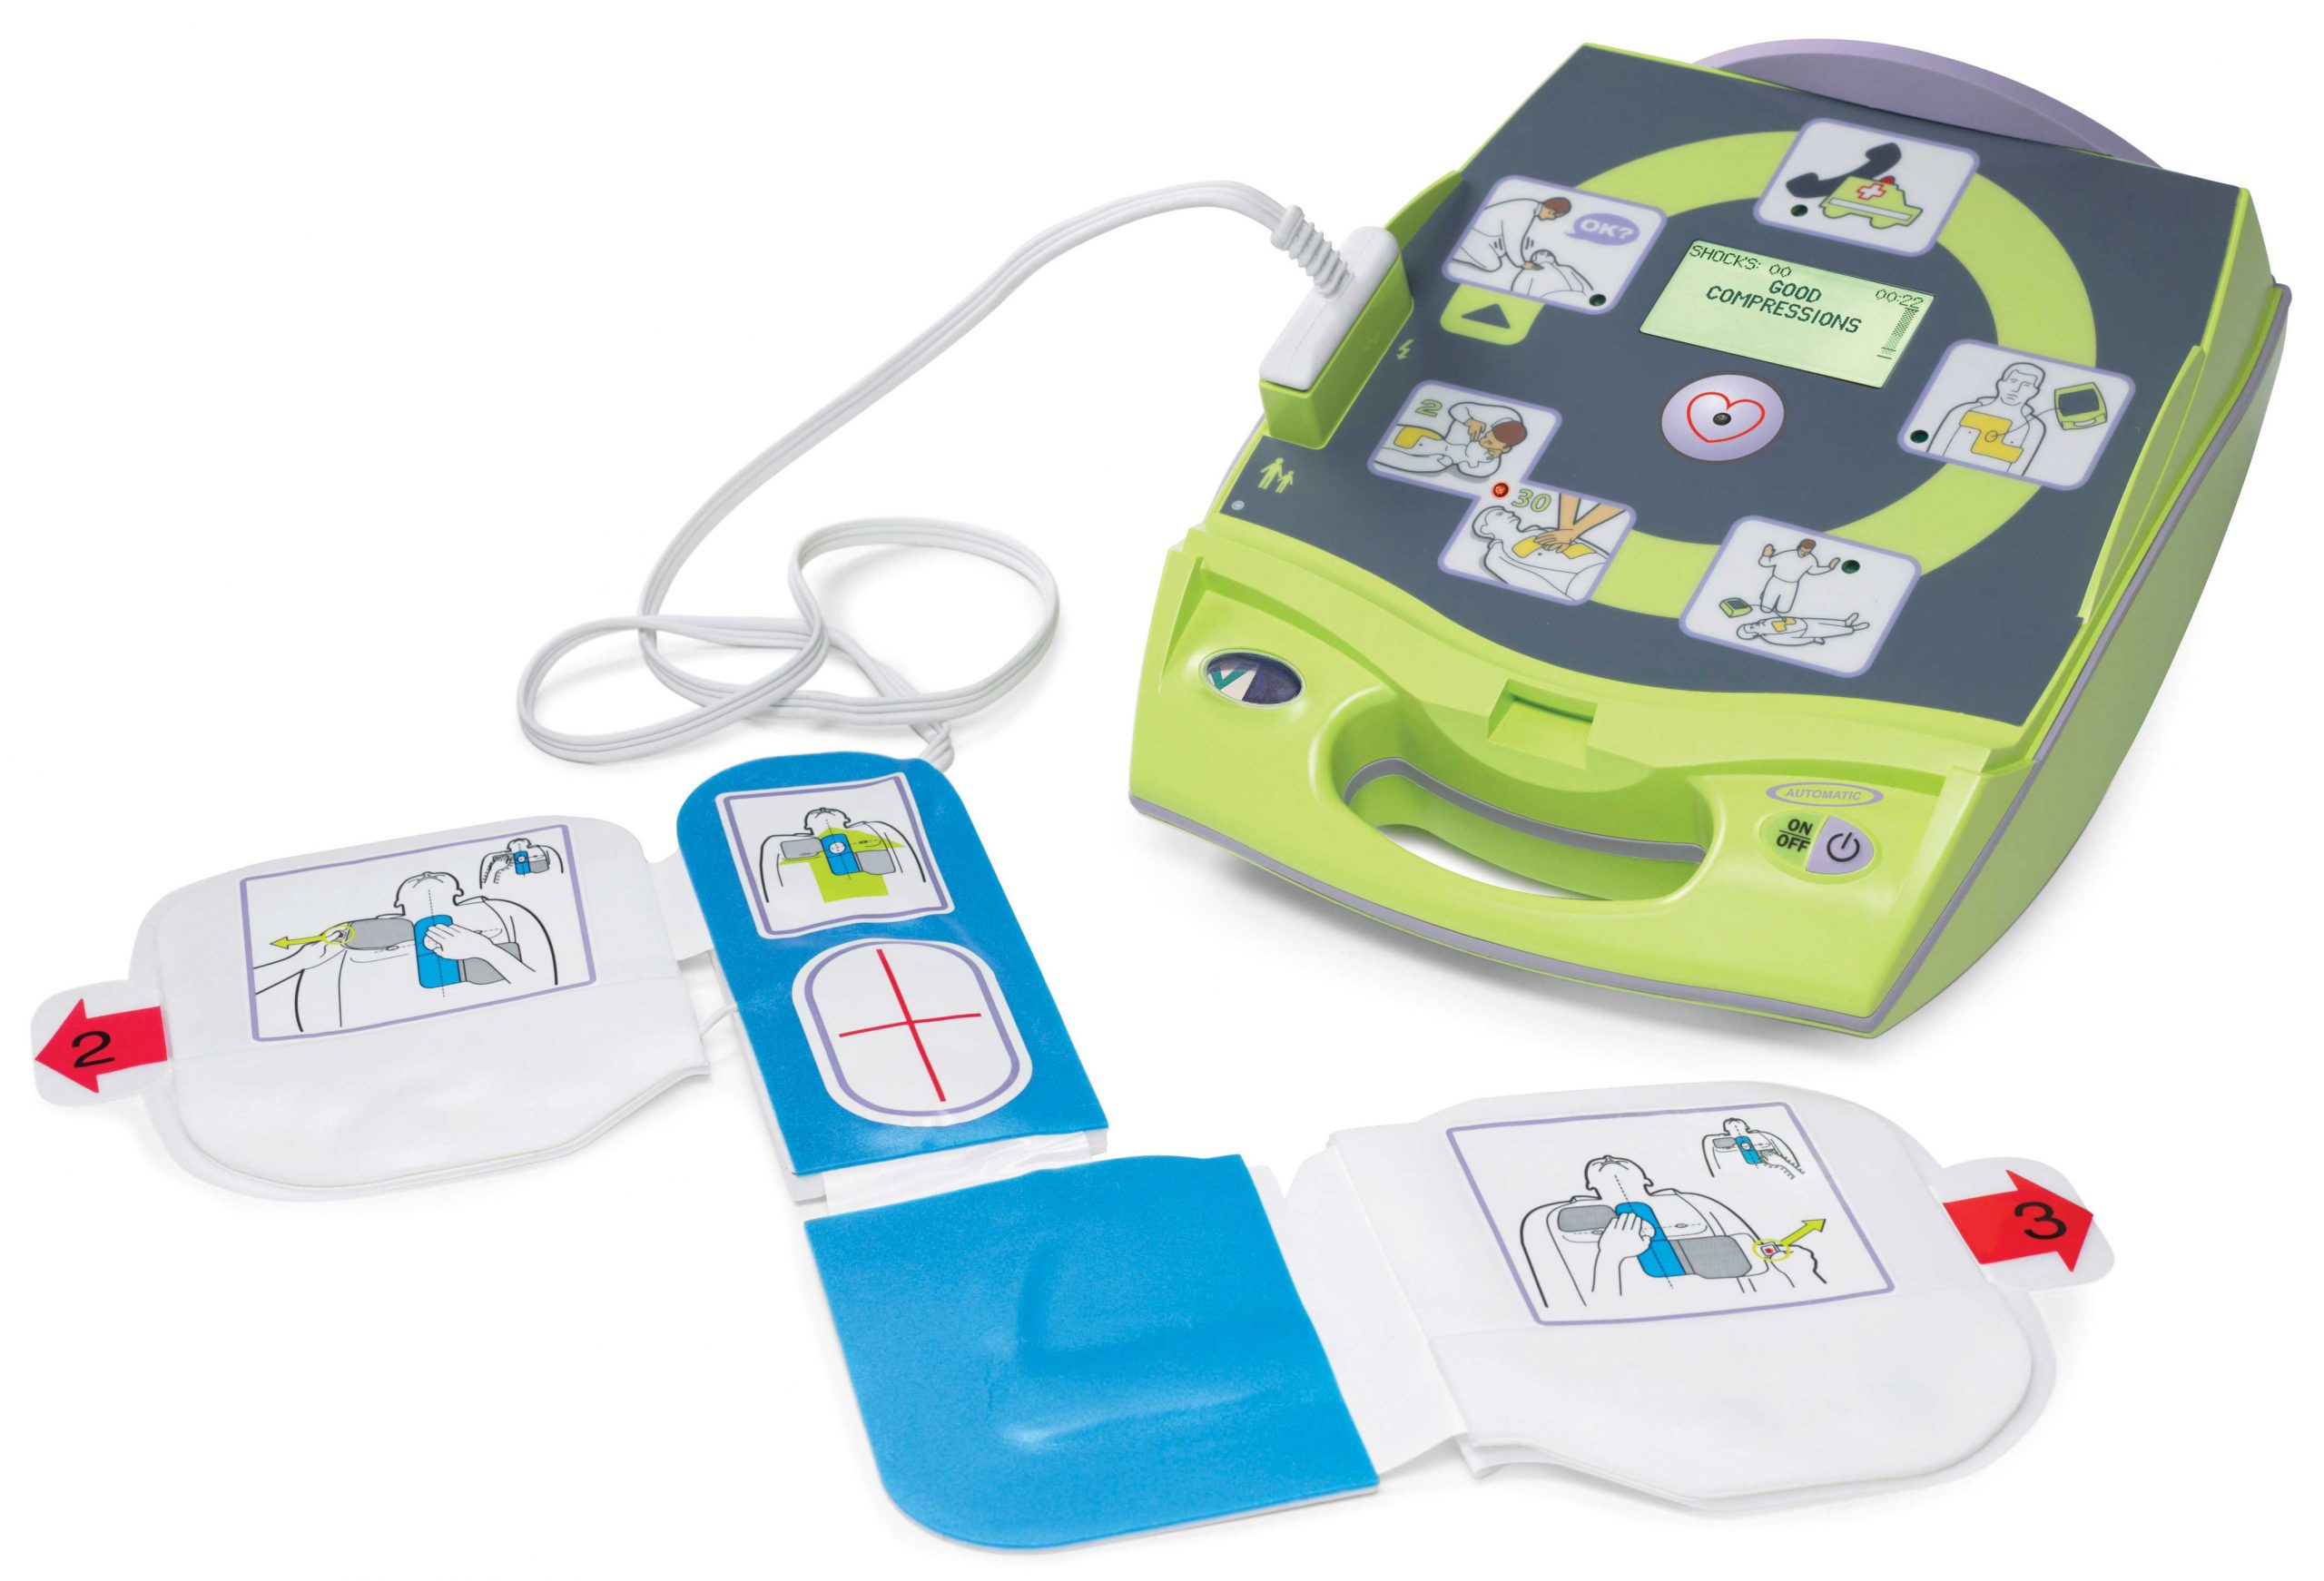 Zoll Plus AED with open lid